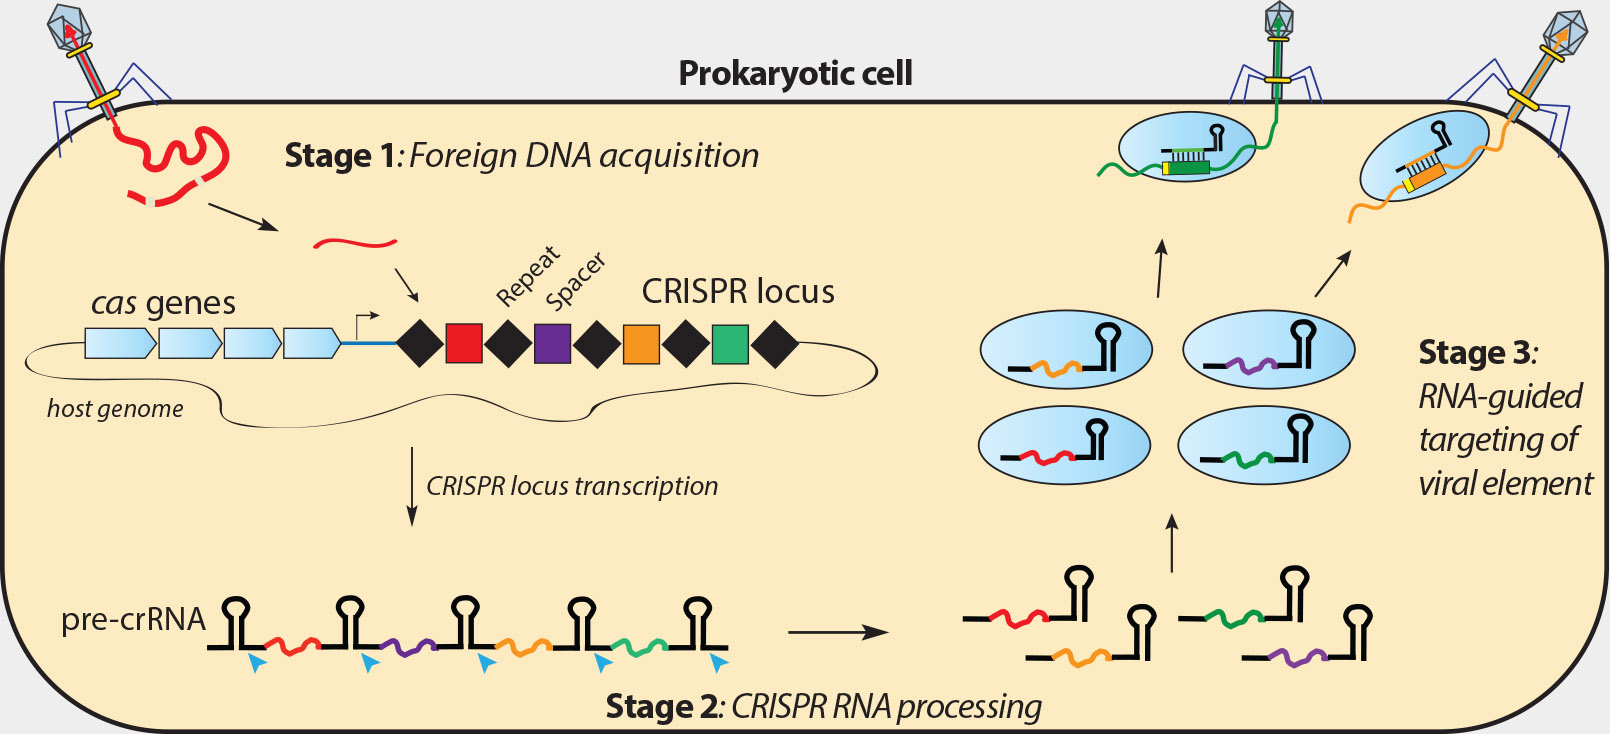 Crispr-pathway 'The Doudna Lab - Jennifer A. Doudna - University of California, Berkeley, EUA